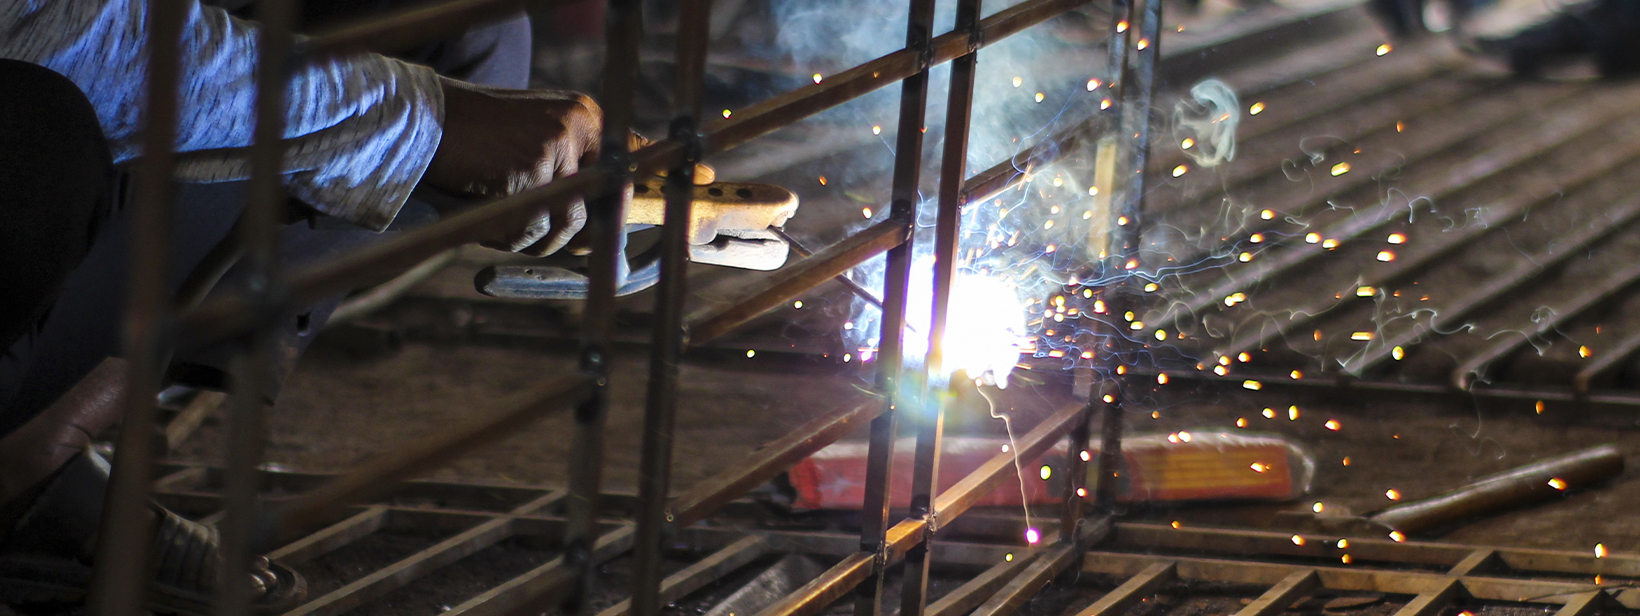 Advantages of Structural Steel Fabrication